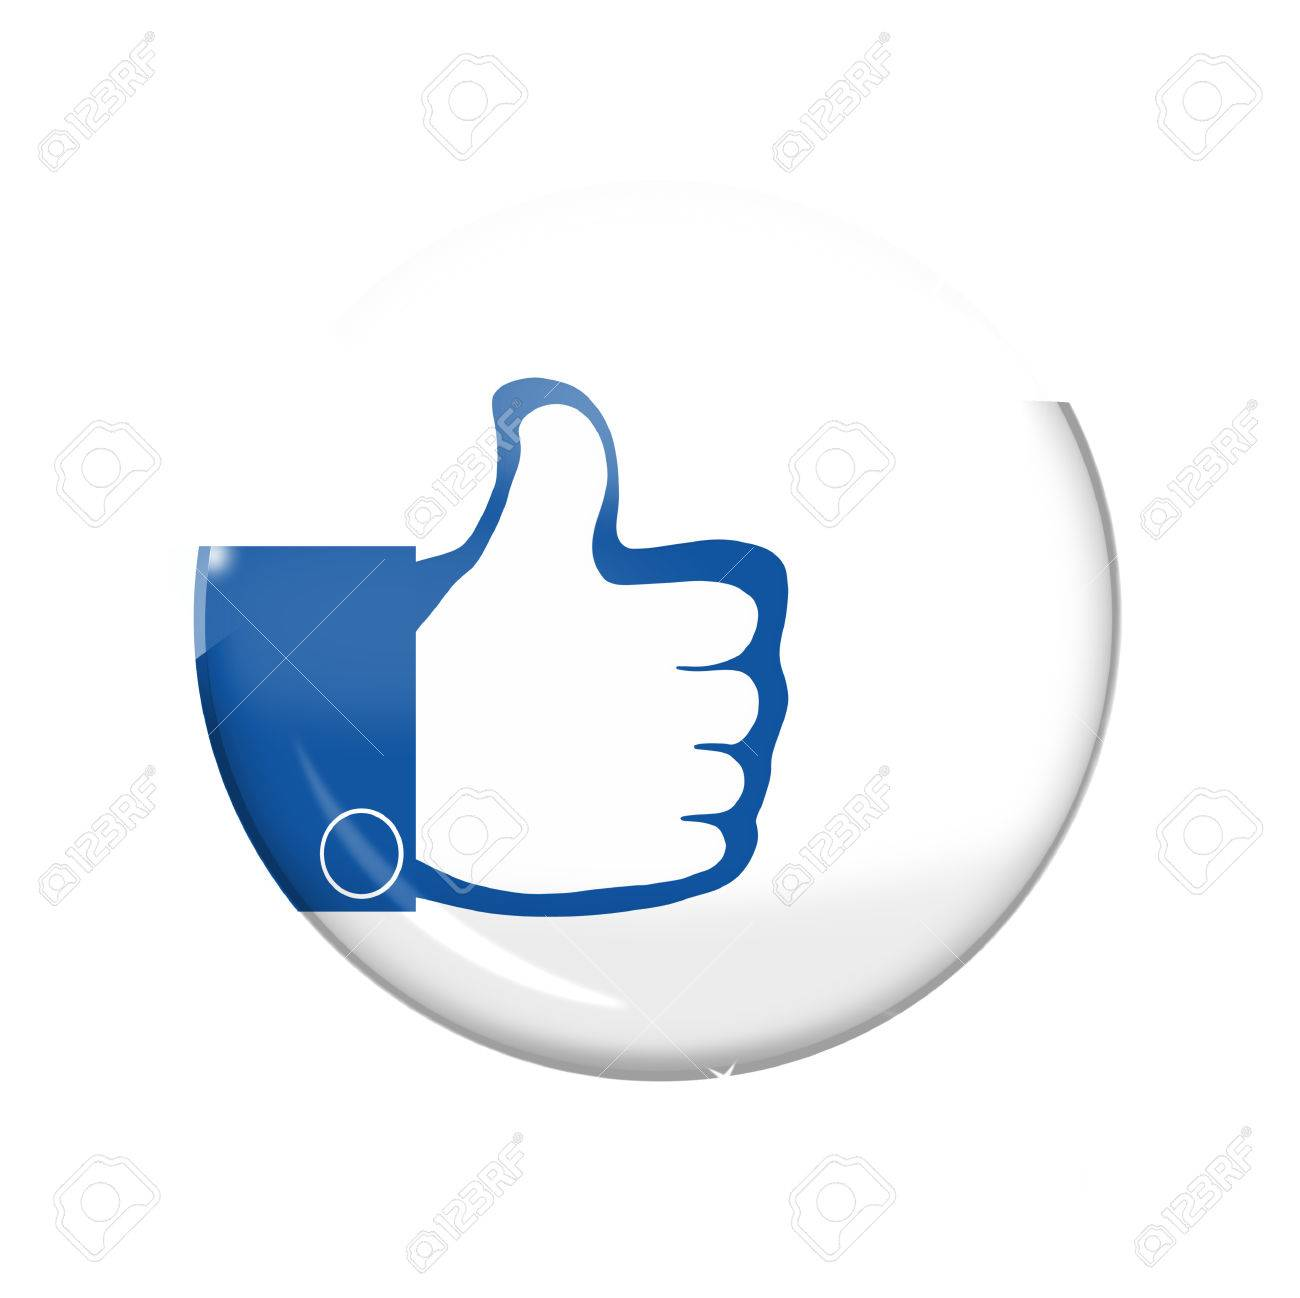 thumbs up icon button - 26668872